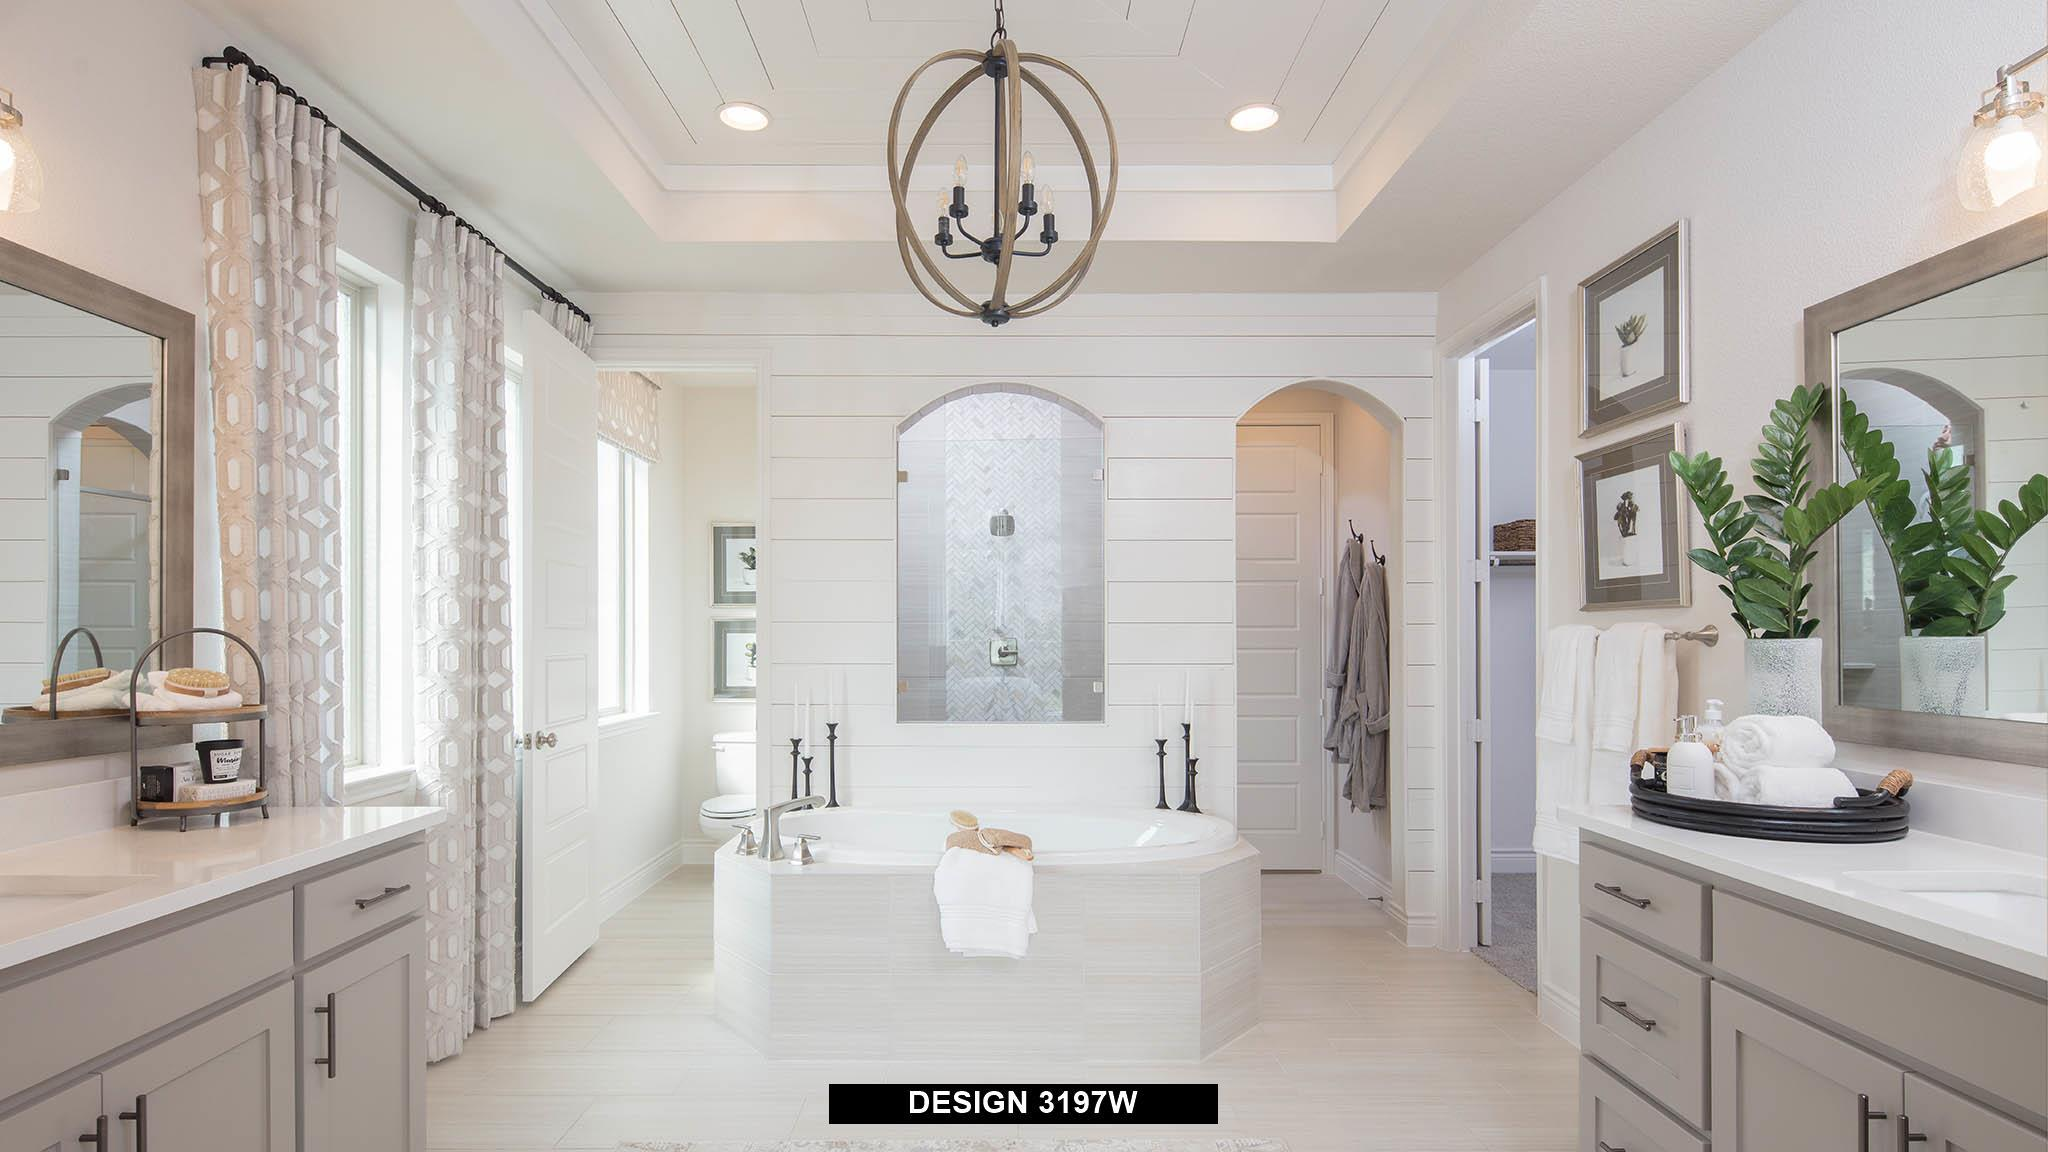 Bathroom featured in the 3197W By Perry Homes in Houston, TX